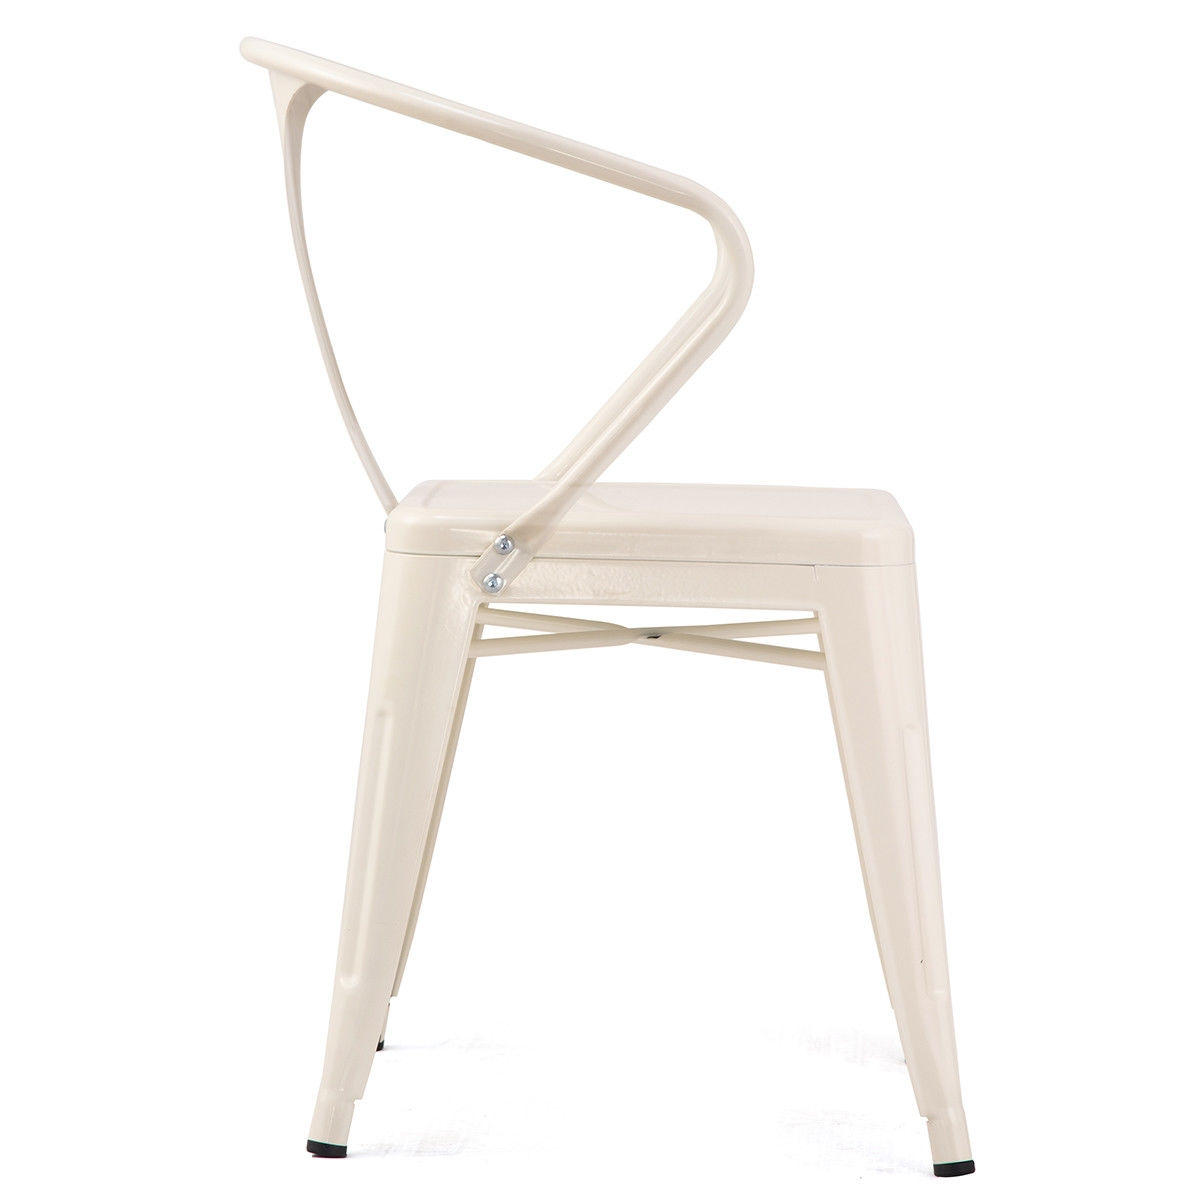 Set of 4 Tolix Style Metal Chairs Arm Chairs-White